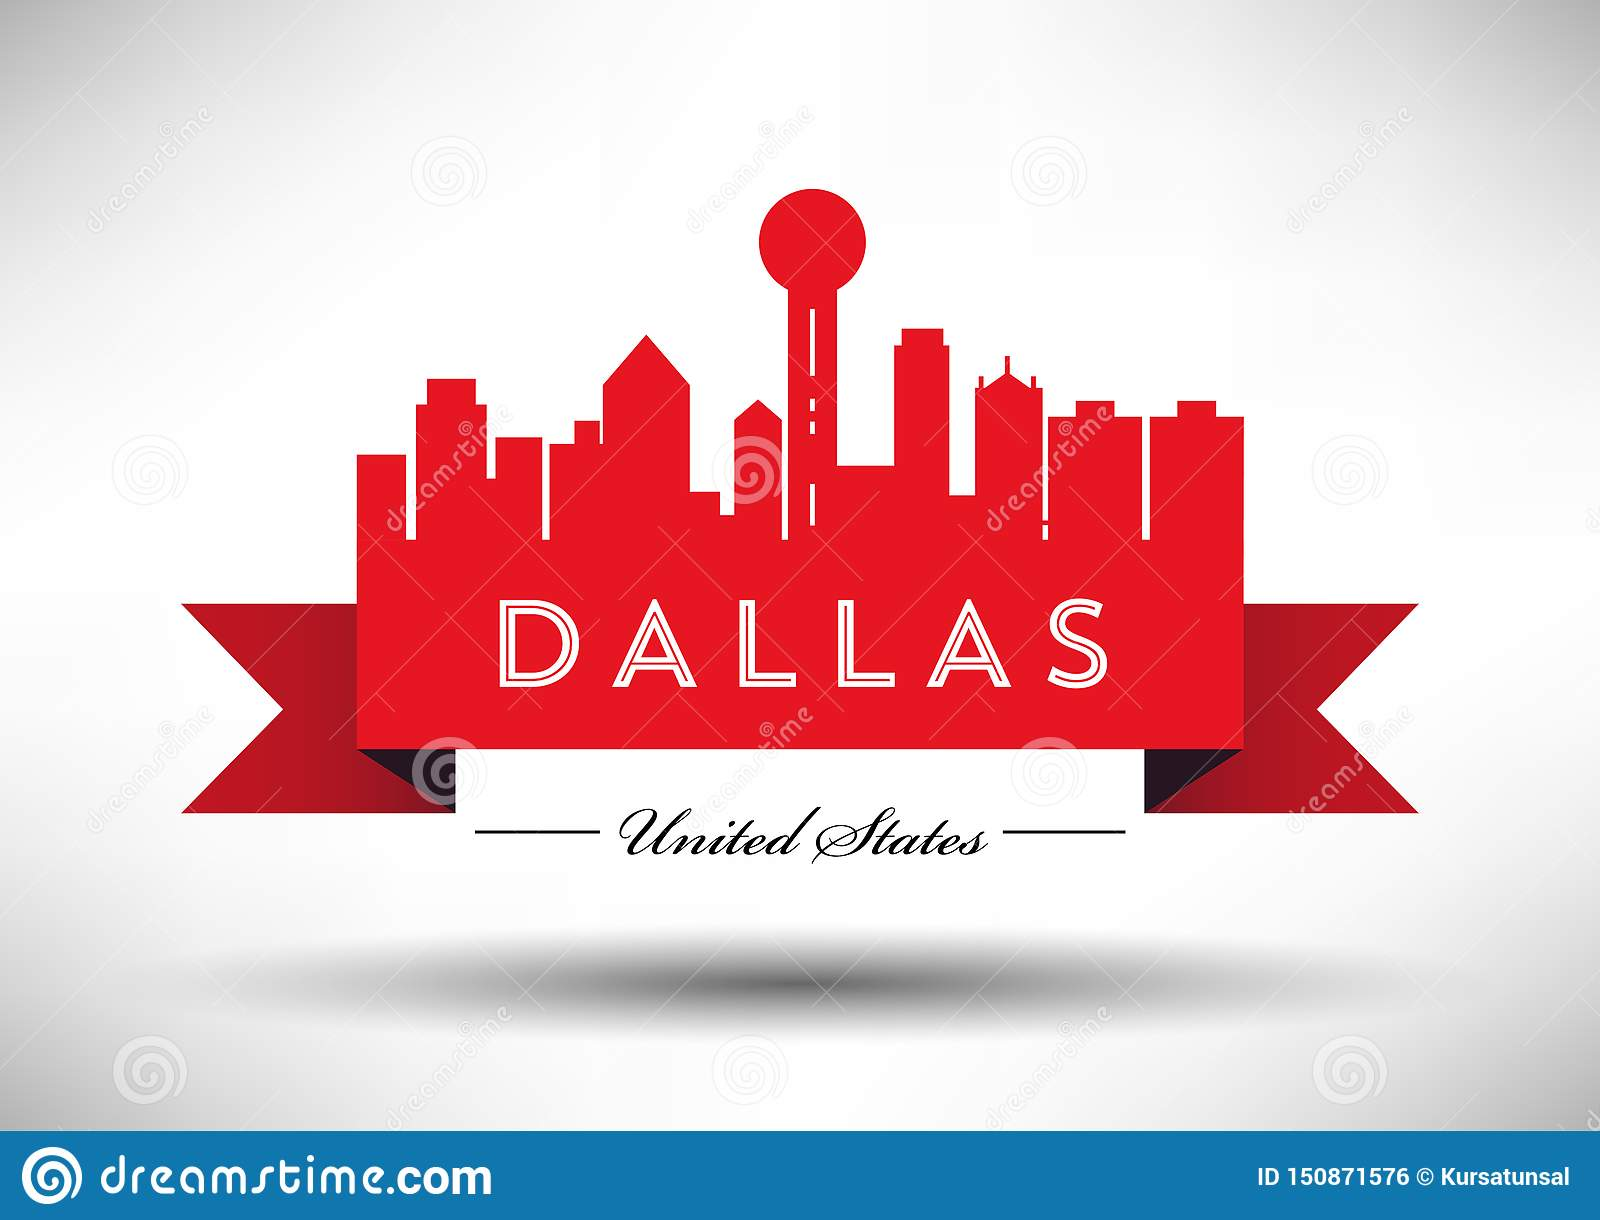 Vectordallas city skyline design